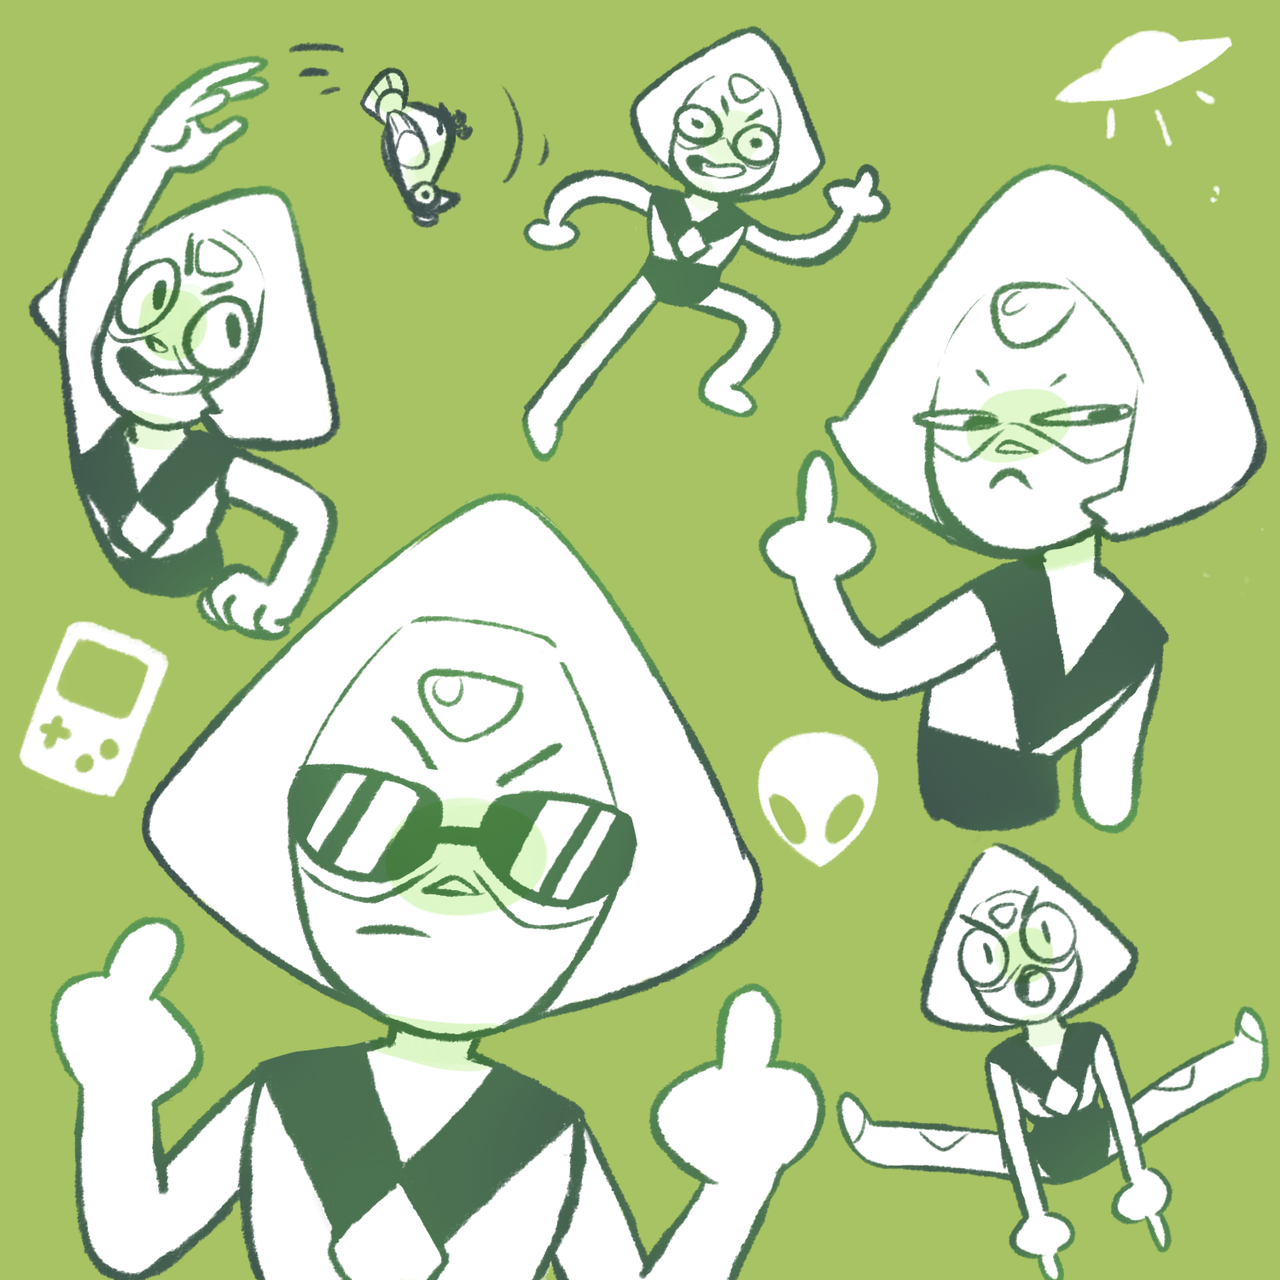 i give u,, peridot flipping the bird in five (5) different ways raffle prize for @pukuppi u egg thx for sending me the best prompt